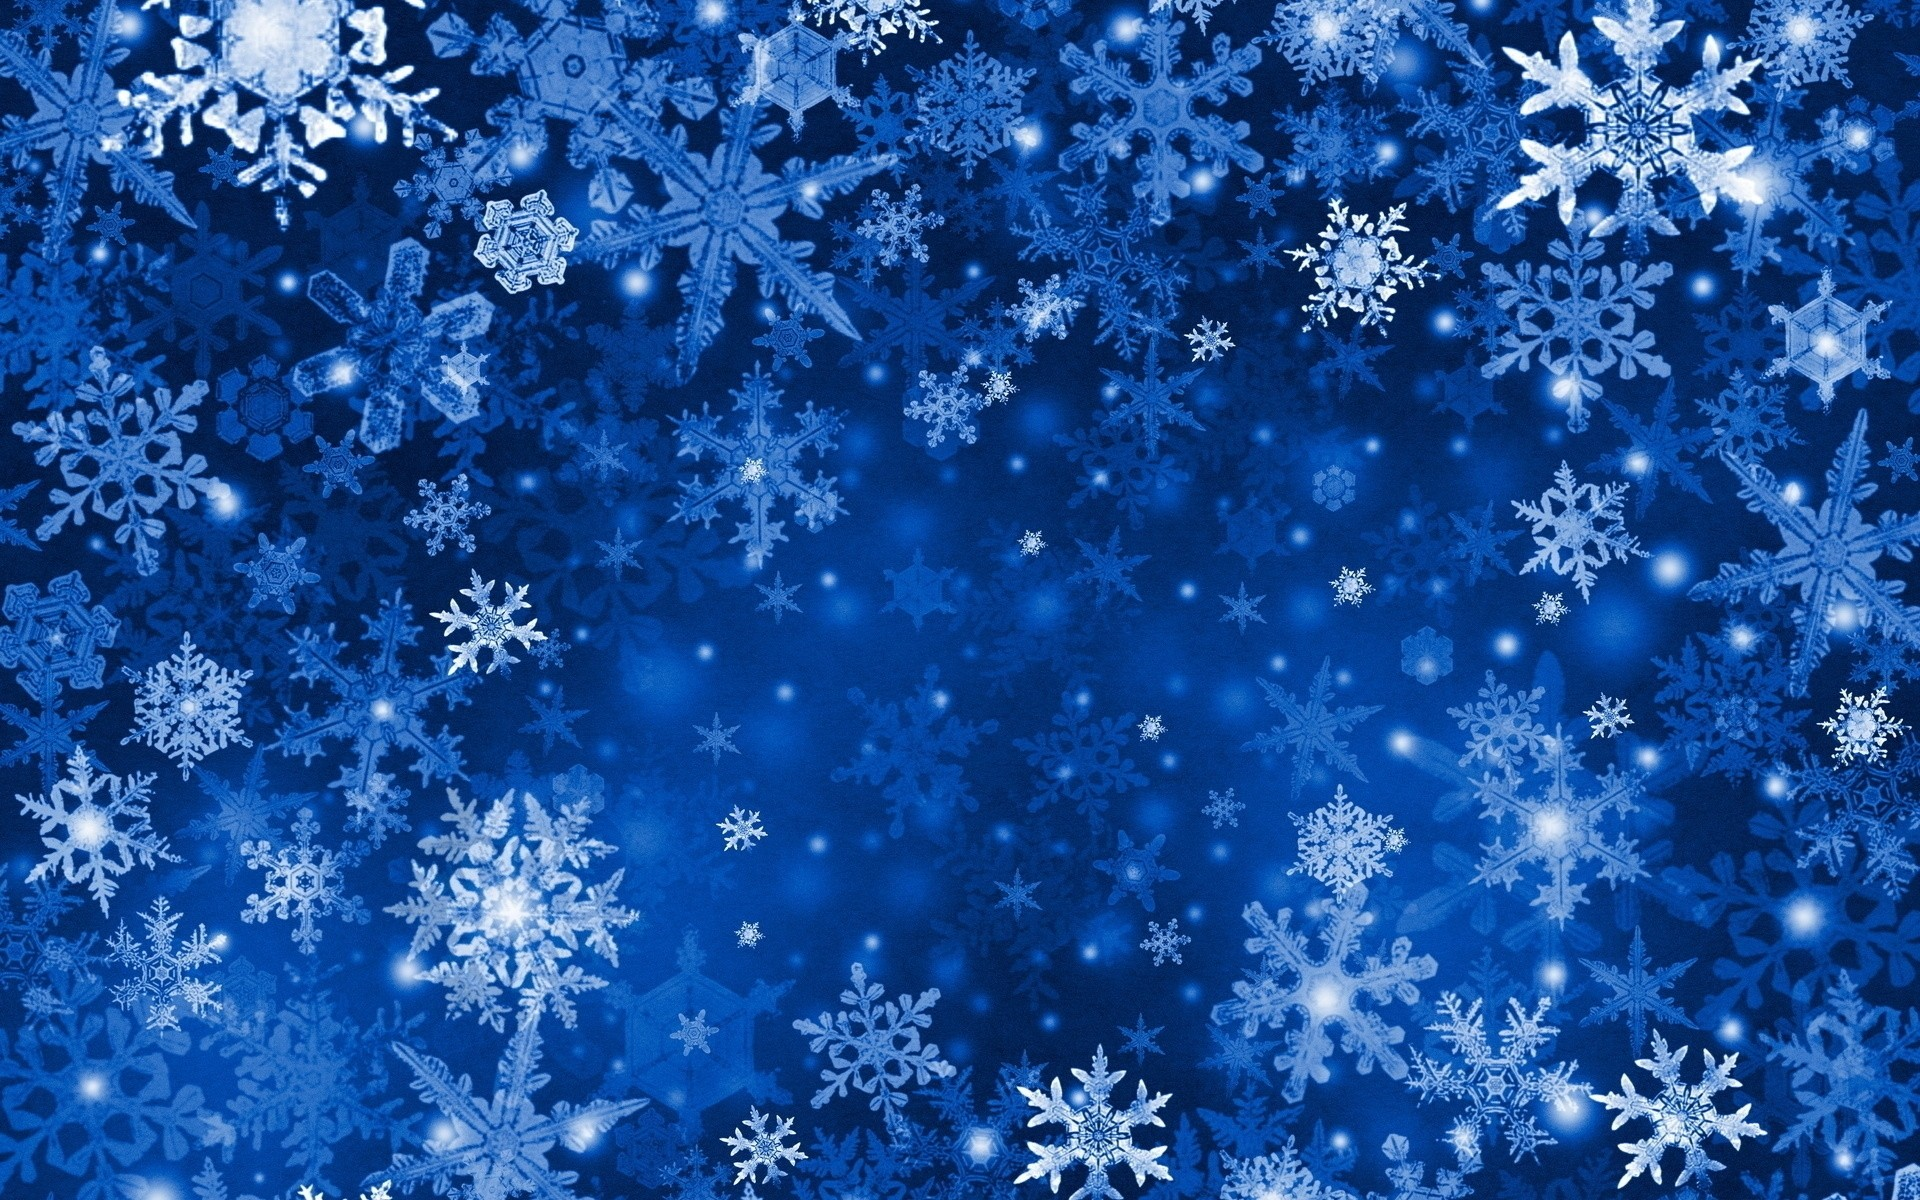 snowflake powerpoint background download #1629